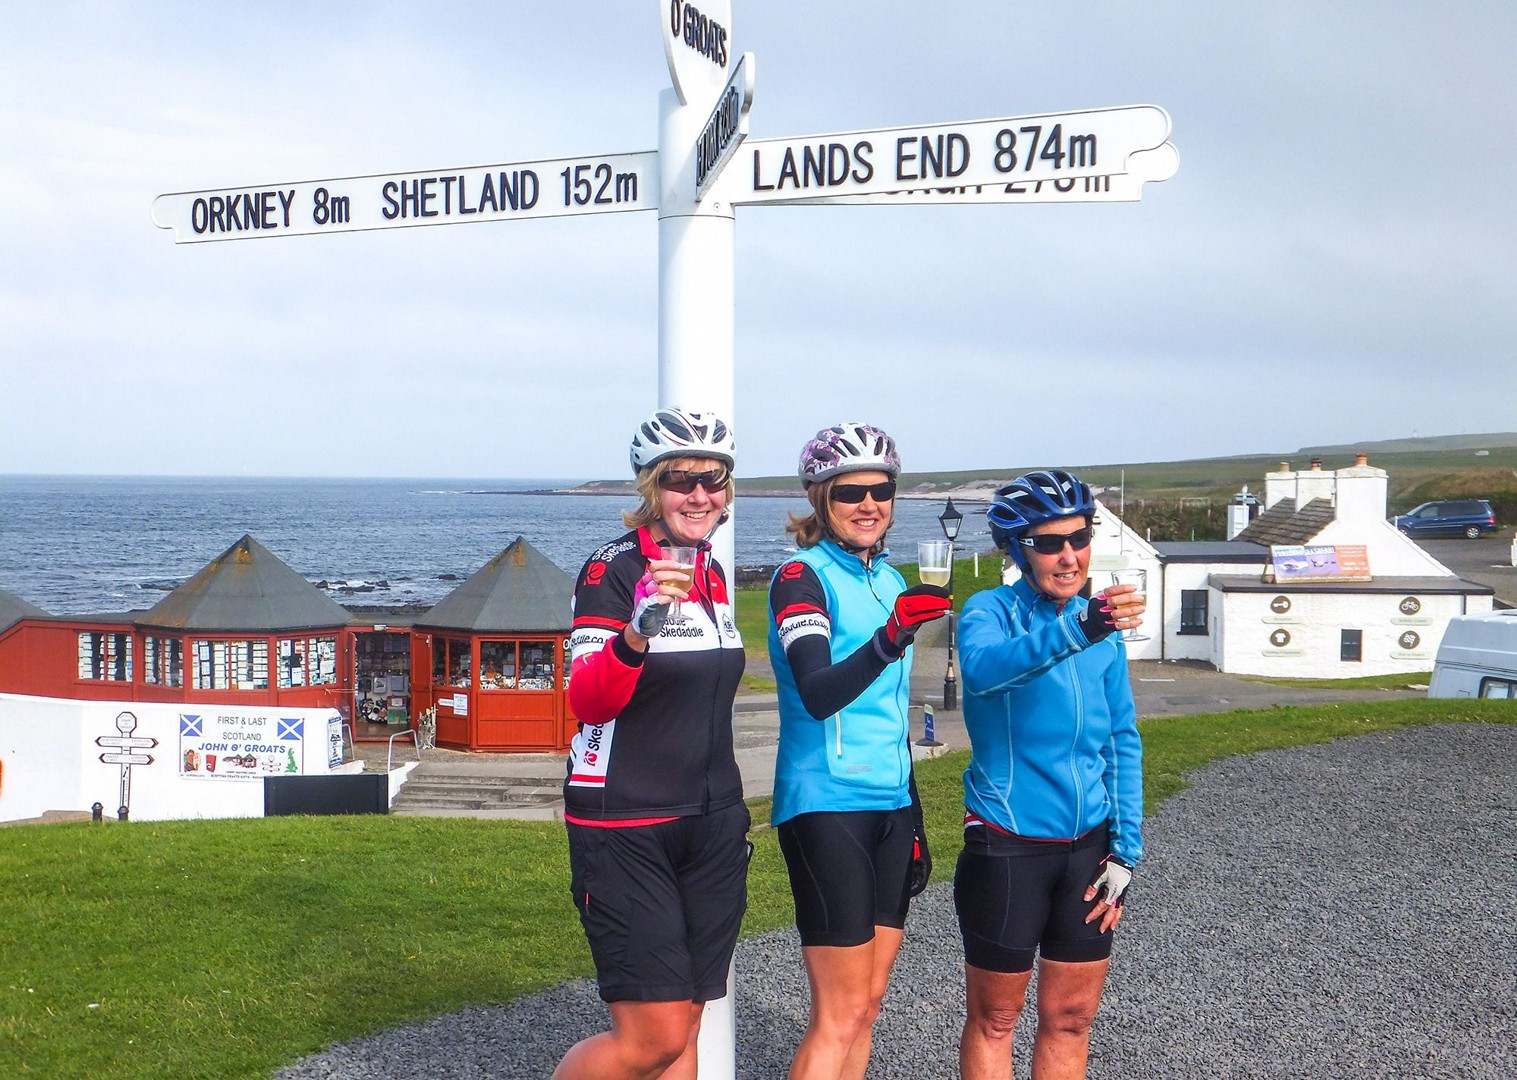 lands-end-to-john-ogroats-explorer-22-days-guided-cycling-holiday.jpg - UK - Land's End to John O'Groats Explorer (22 days) - Guided Cycling Holiday - Leisure Cycling